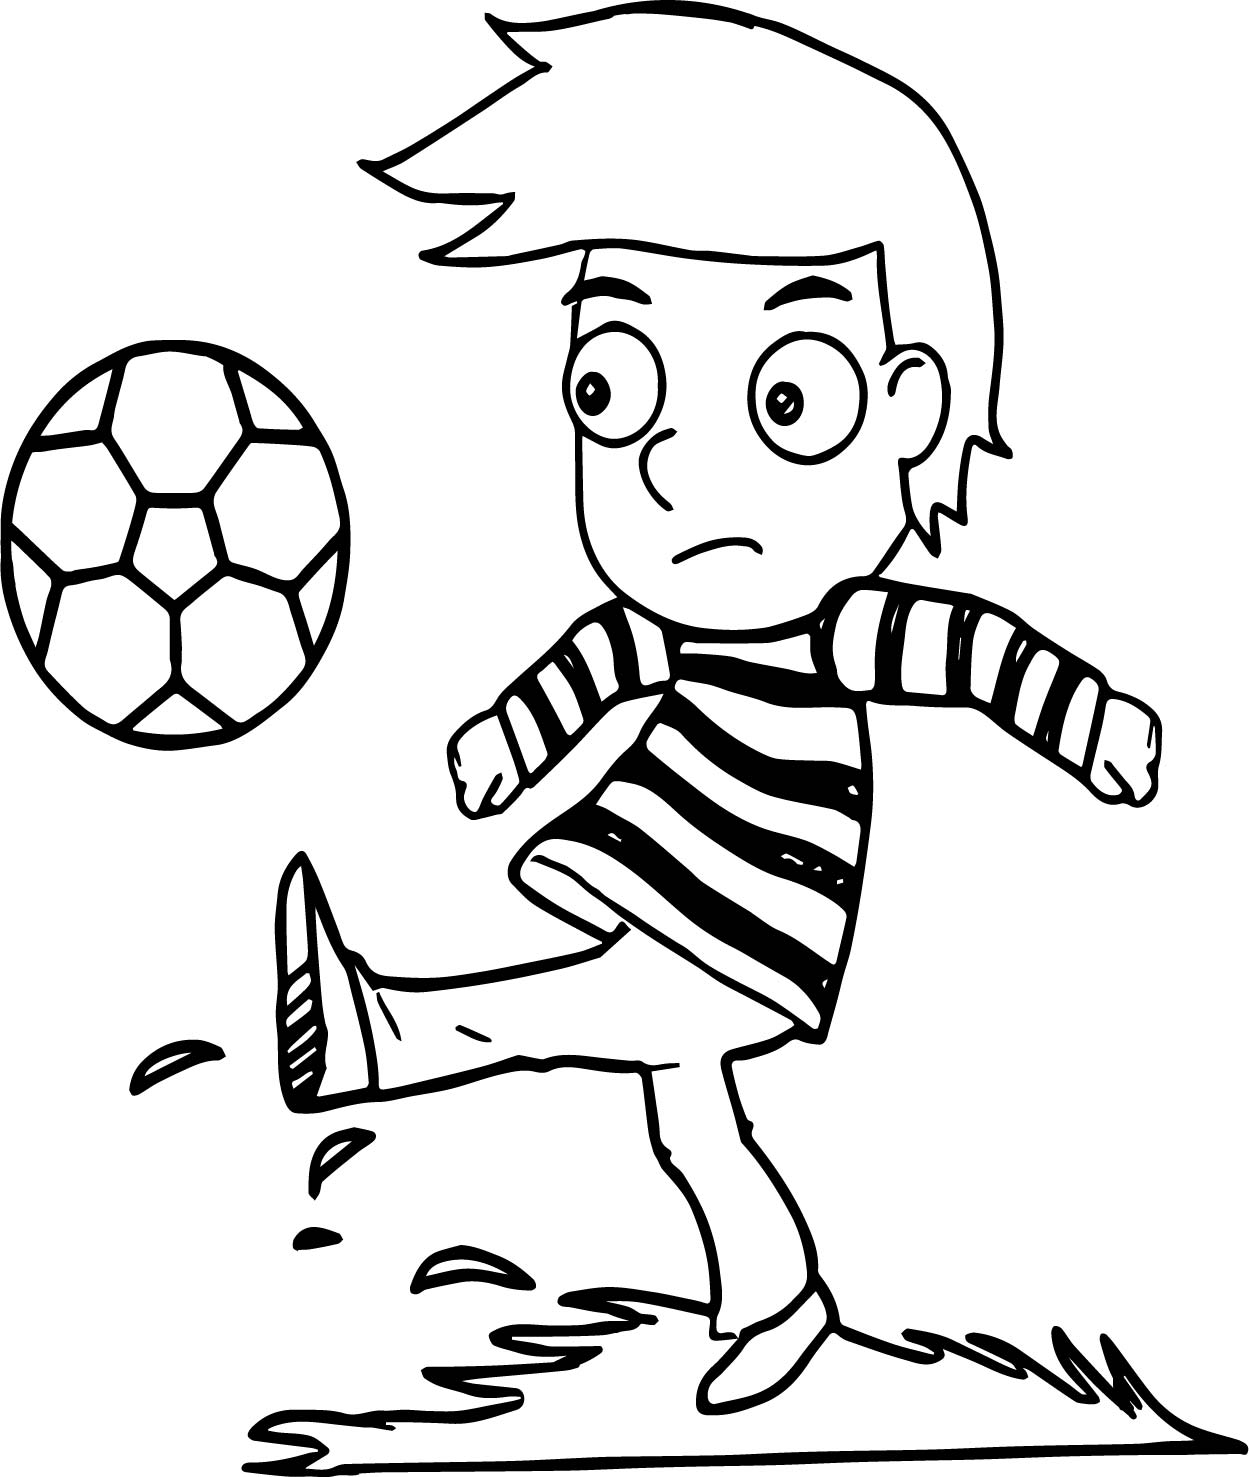 Boy Playing Soccer Playing Football Coloring Page